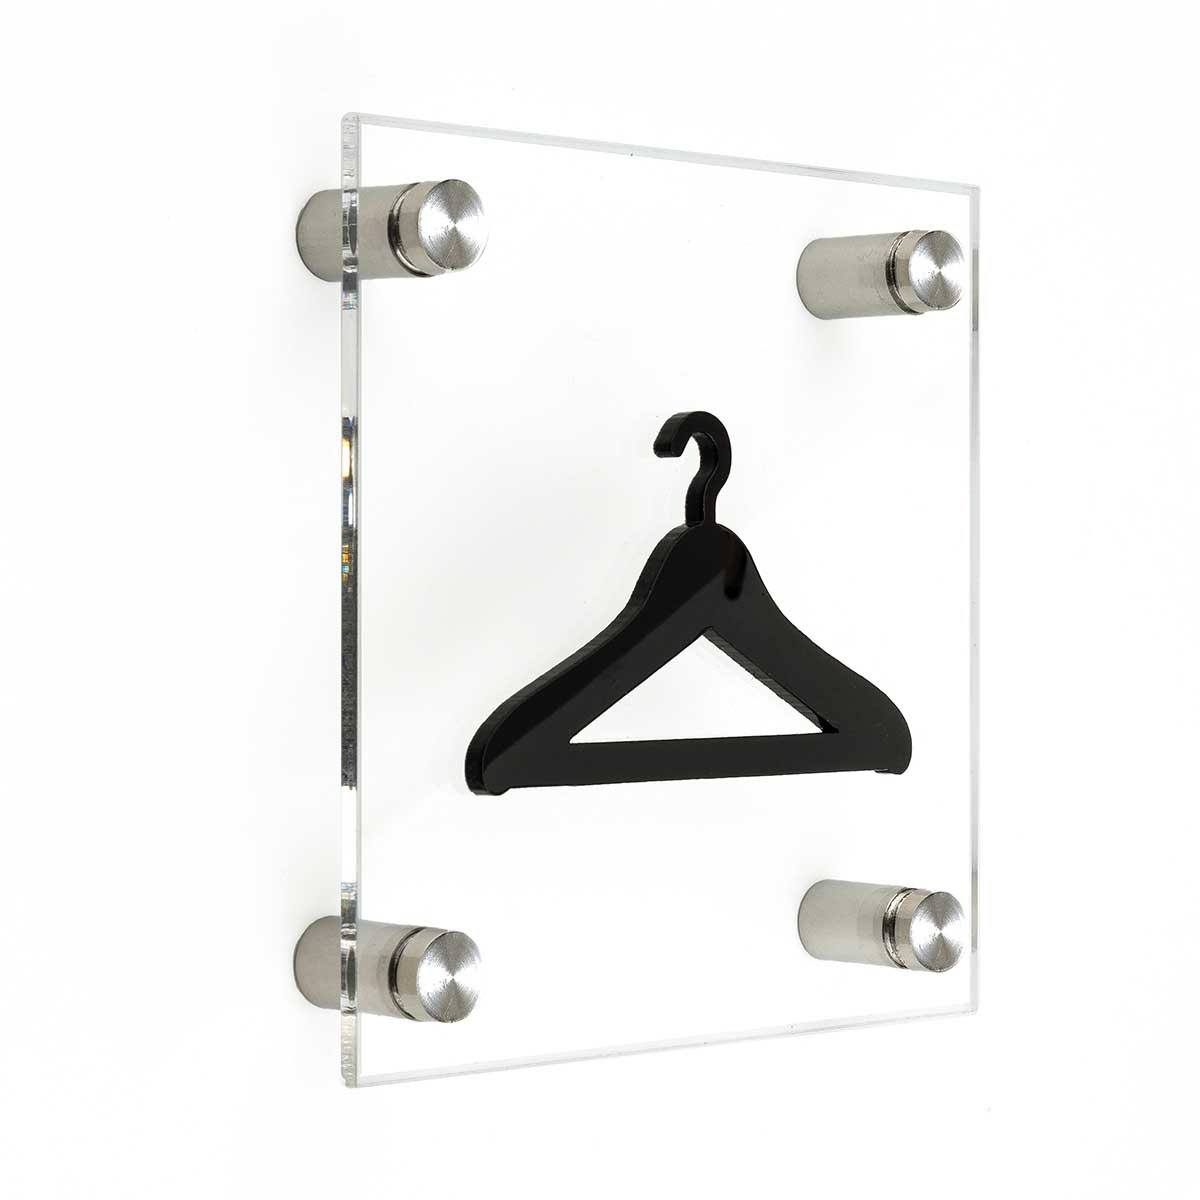 Acrylic Wardrobe Signs with Metal Holders